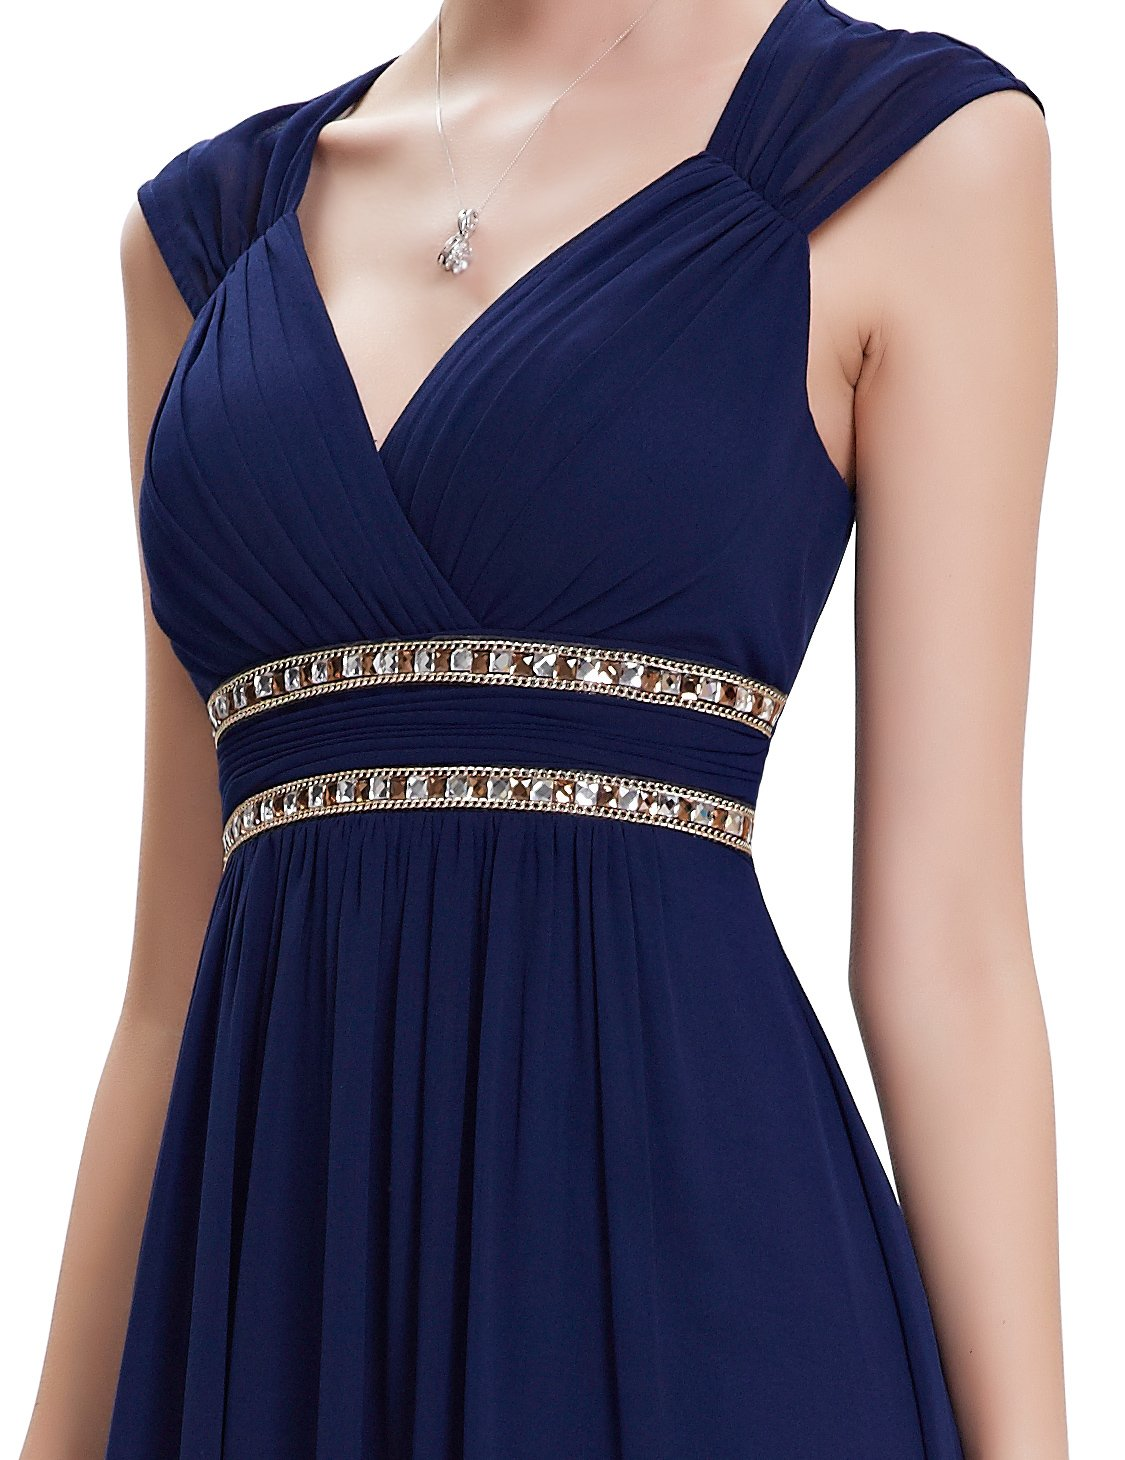 Ever-Pretty Womens Floor Length Beaded Grecian Style Military Ball Dress 6 US Navy Blue by Ever-Pretty (Image #5)